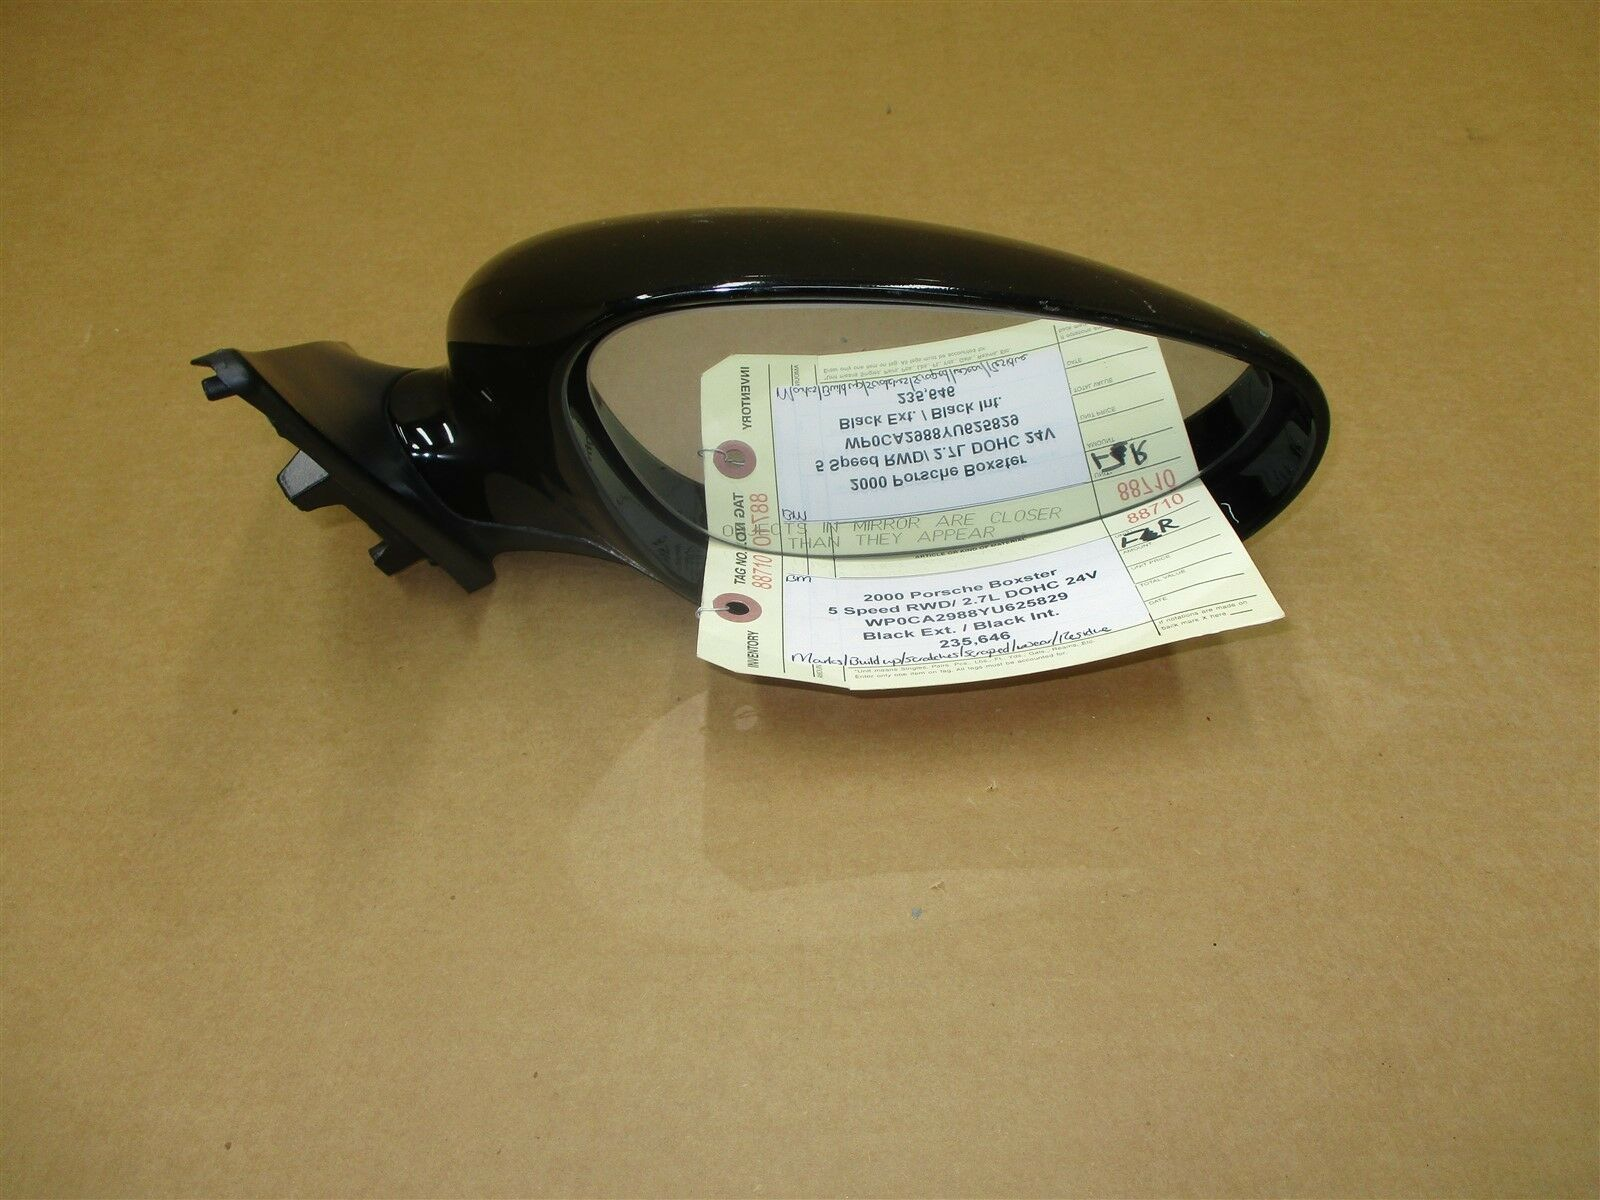 00 Boxster RWD Porsche 986 R EXTERIOR REAR VIEW MIRROR HOUSING Black 235,646